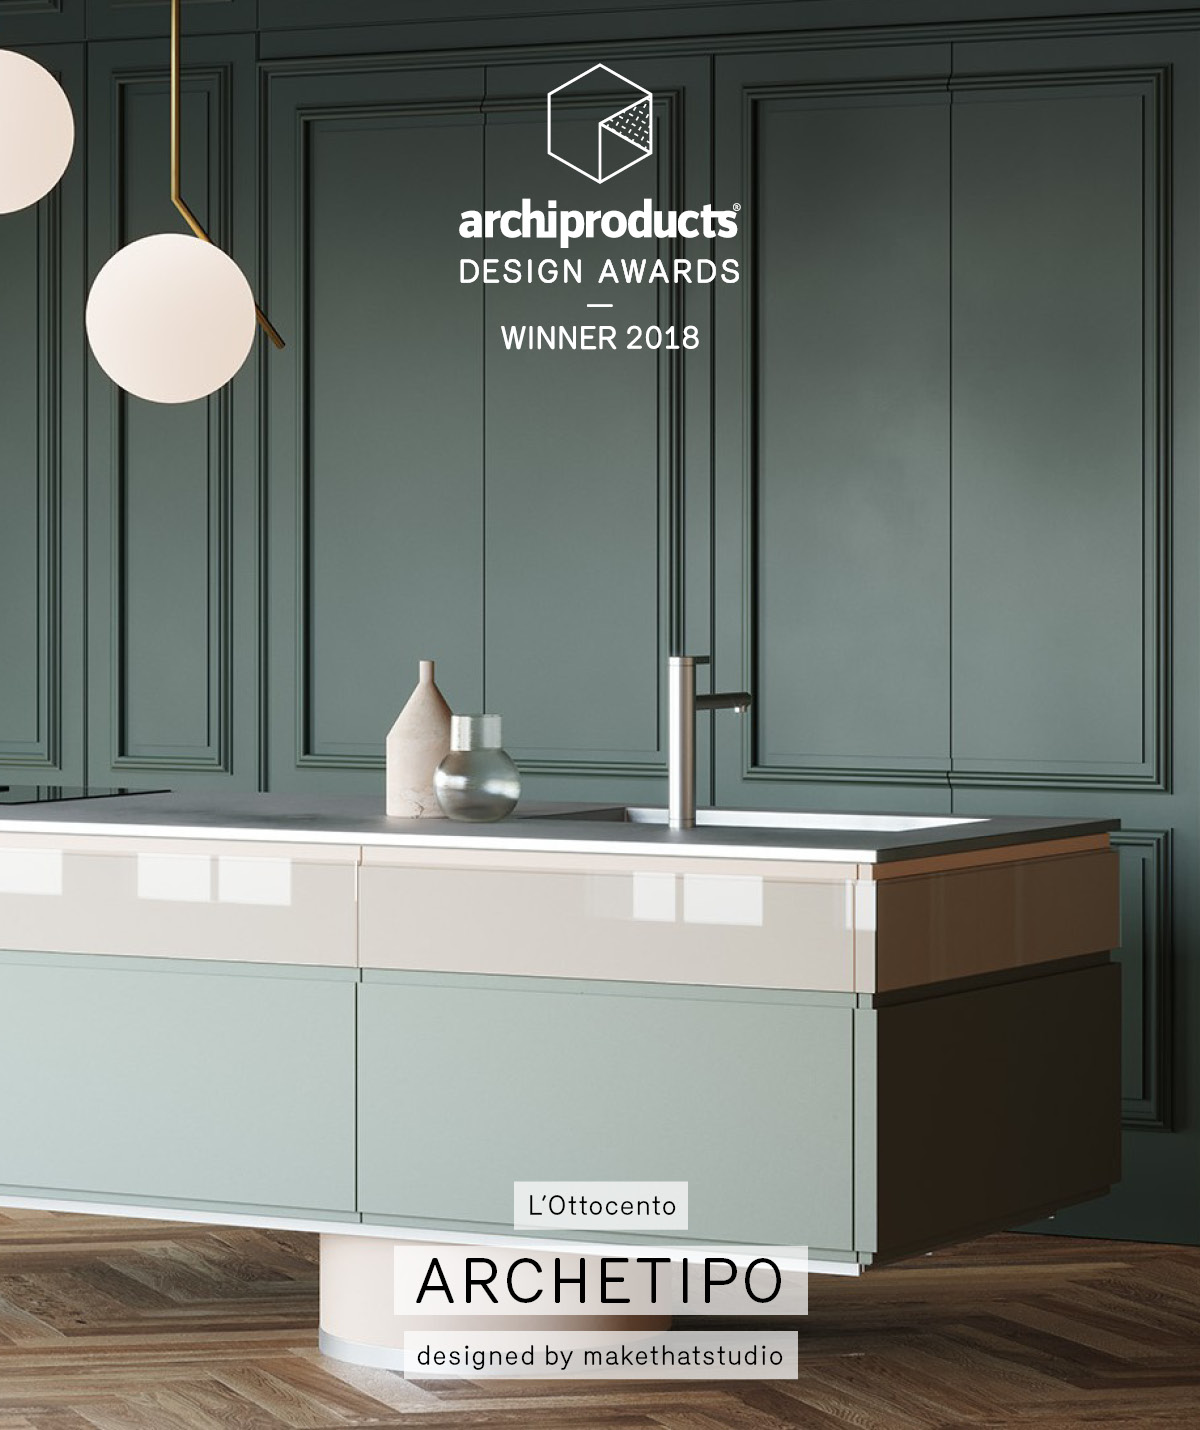 Archetipo Kitchen awarded with 2018 Archiproducts Design Awards - L ...